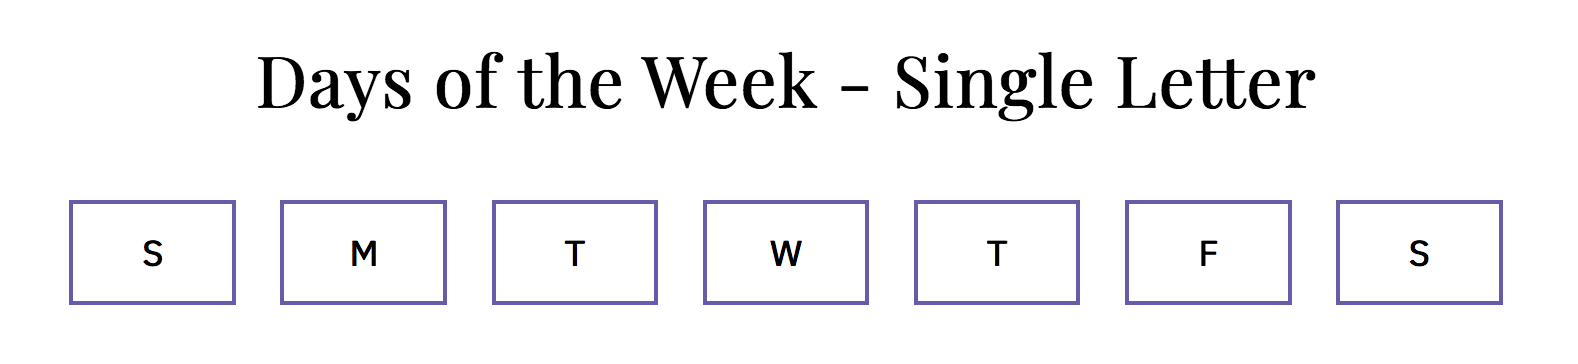 day of the week selector in English using narrow names